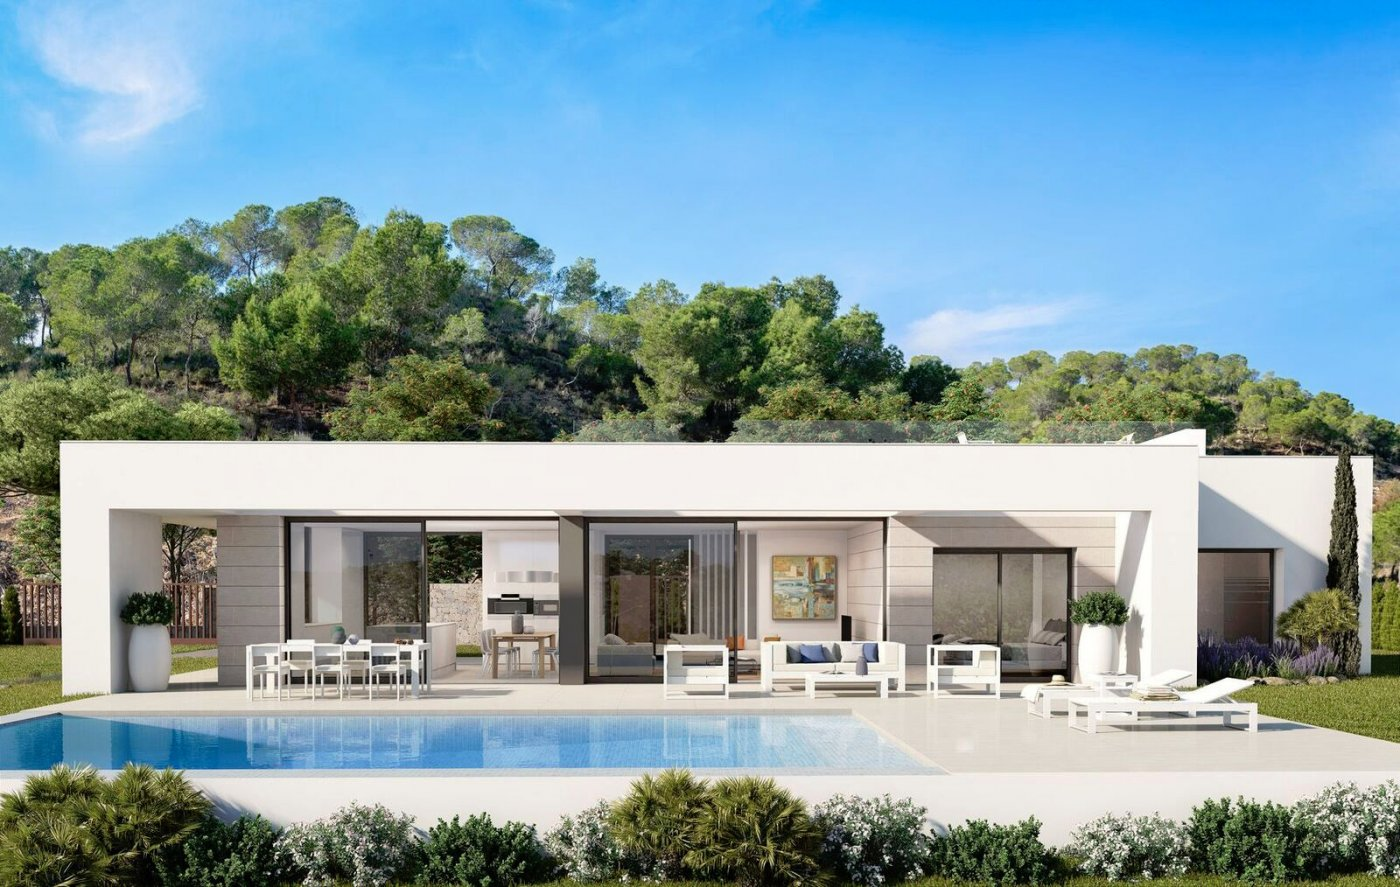 Detached - New Build - Campoamor - Campoamor